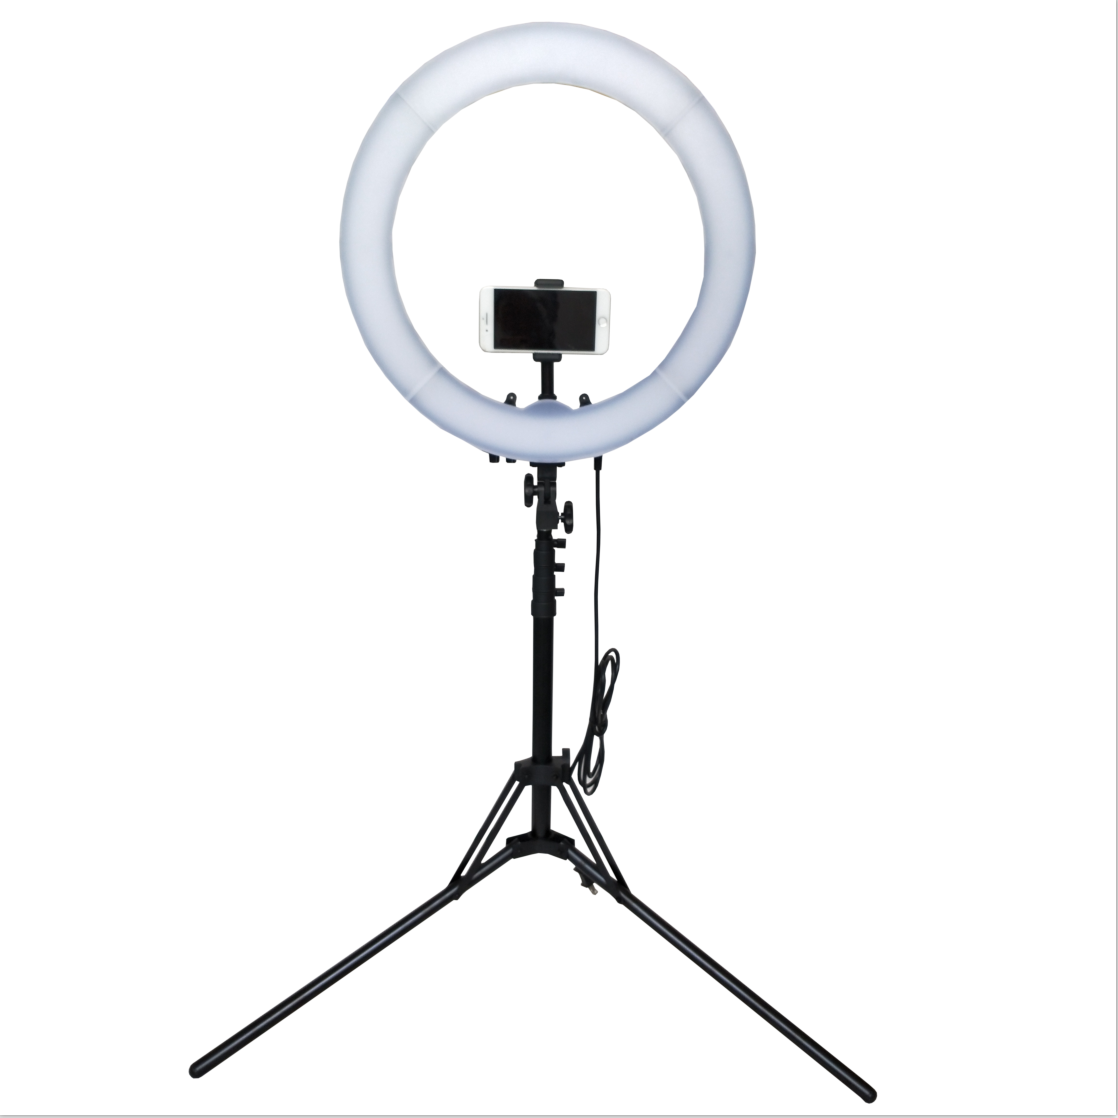 12 selfie led ring light kit 240 pcs photographic lighting aro de luz with tripod stand & cell phone holder for makeup youtube